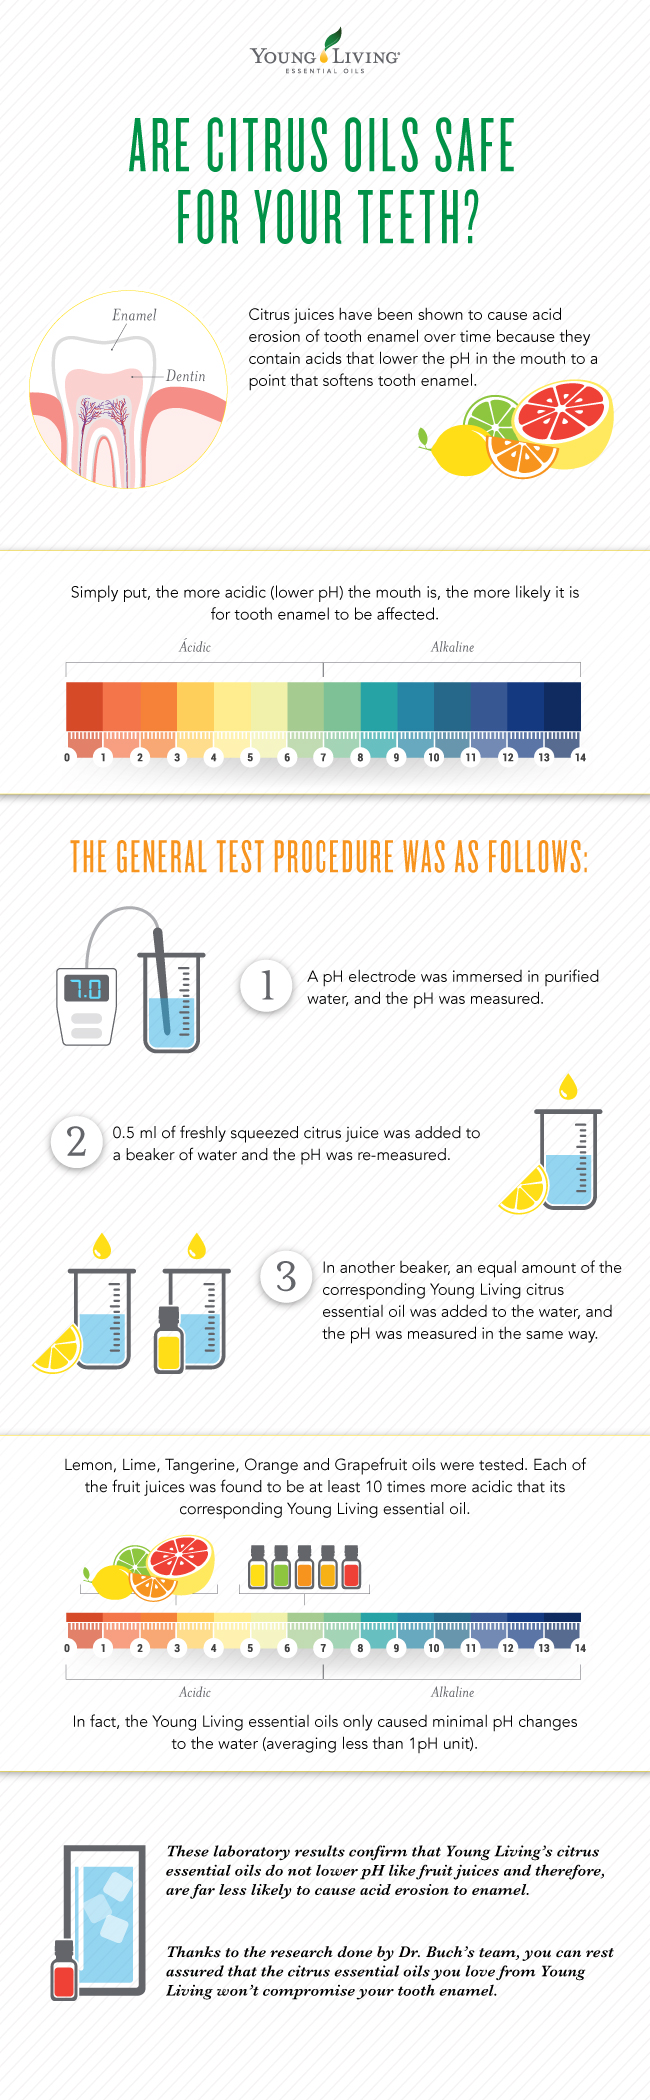 Infographic with pH scale and citrus oil acid erosion on tooth enamel